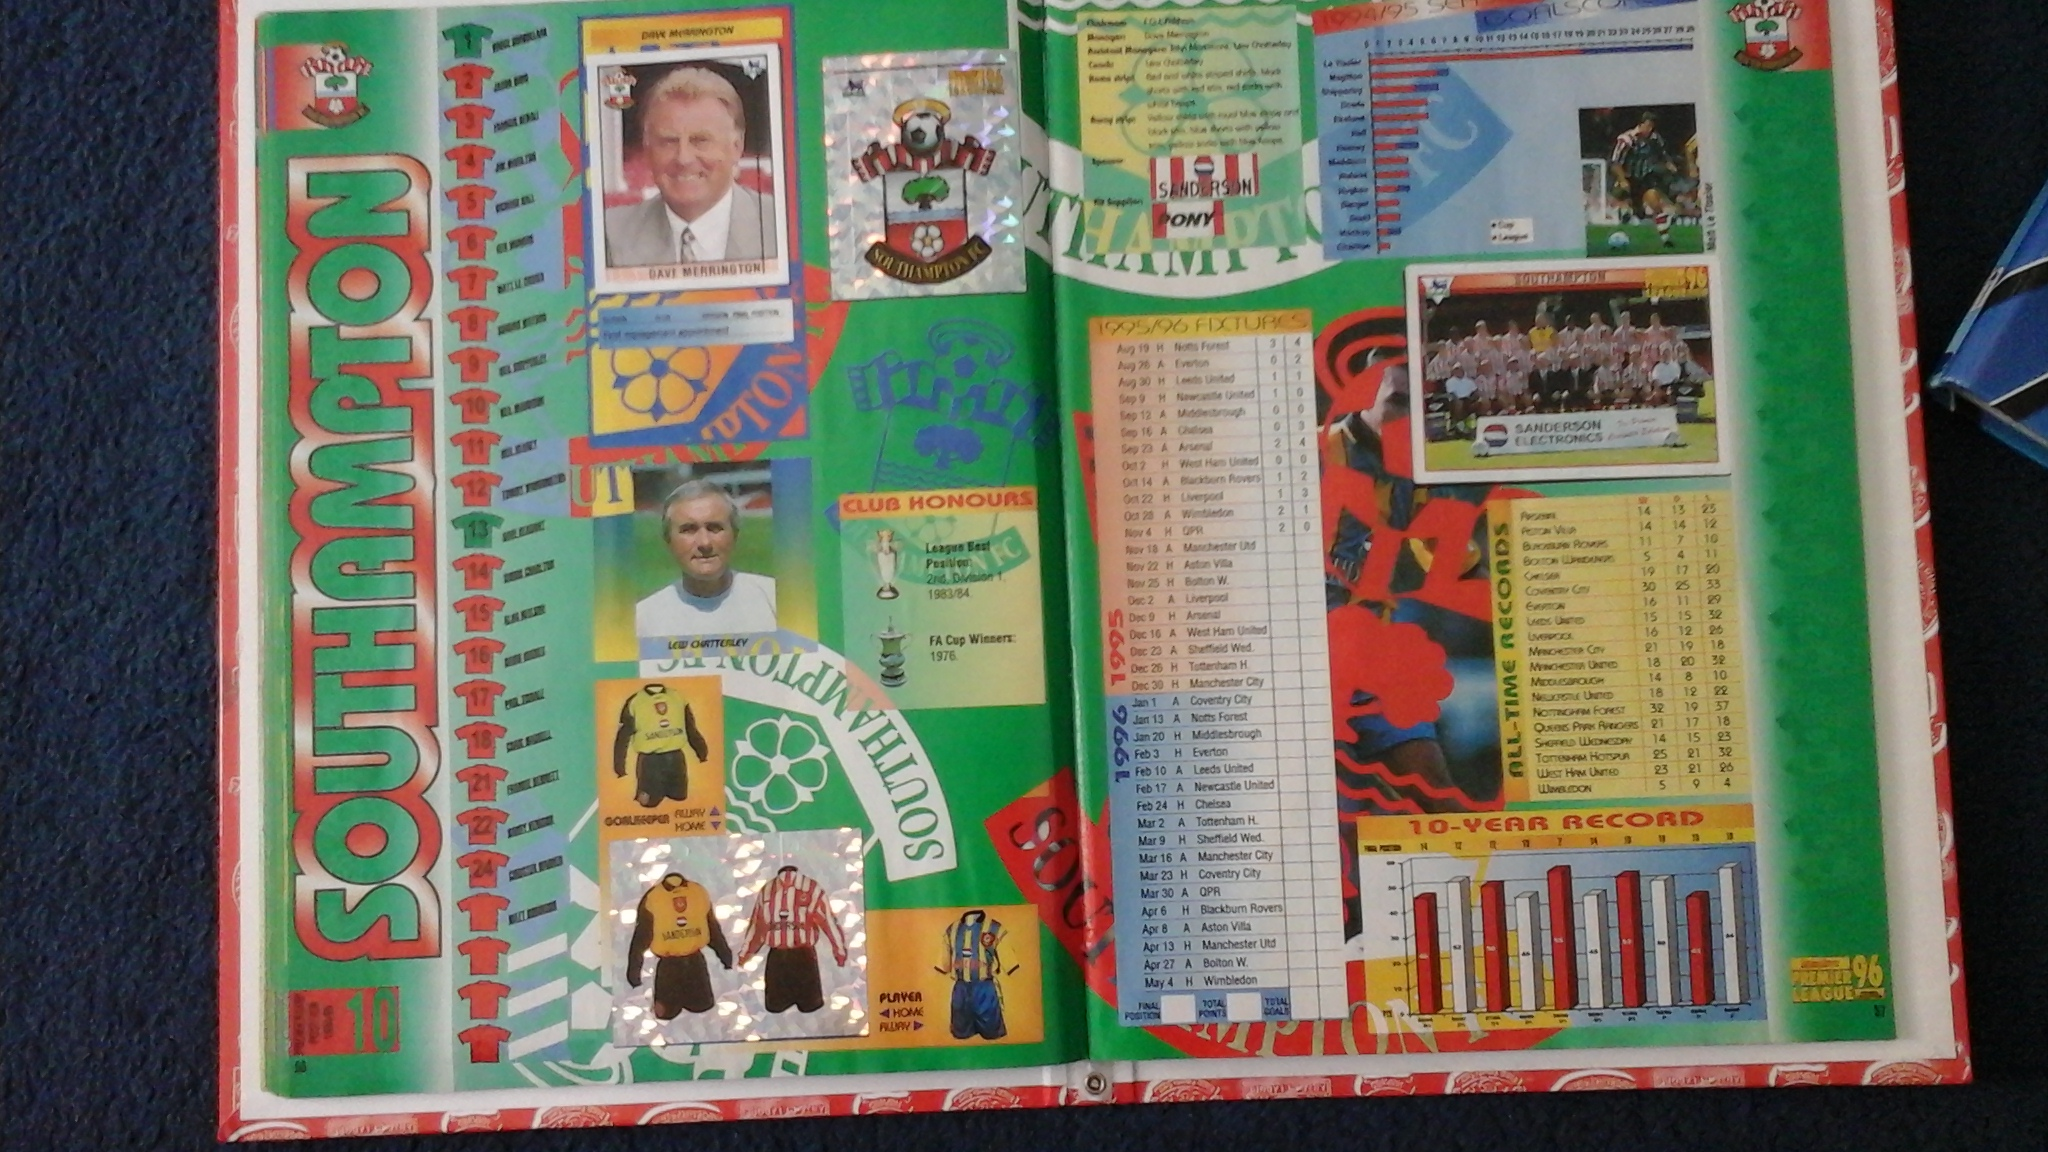 A page from a 1990s Premier League sticker album